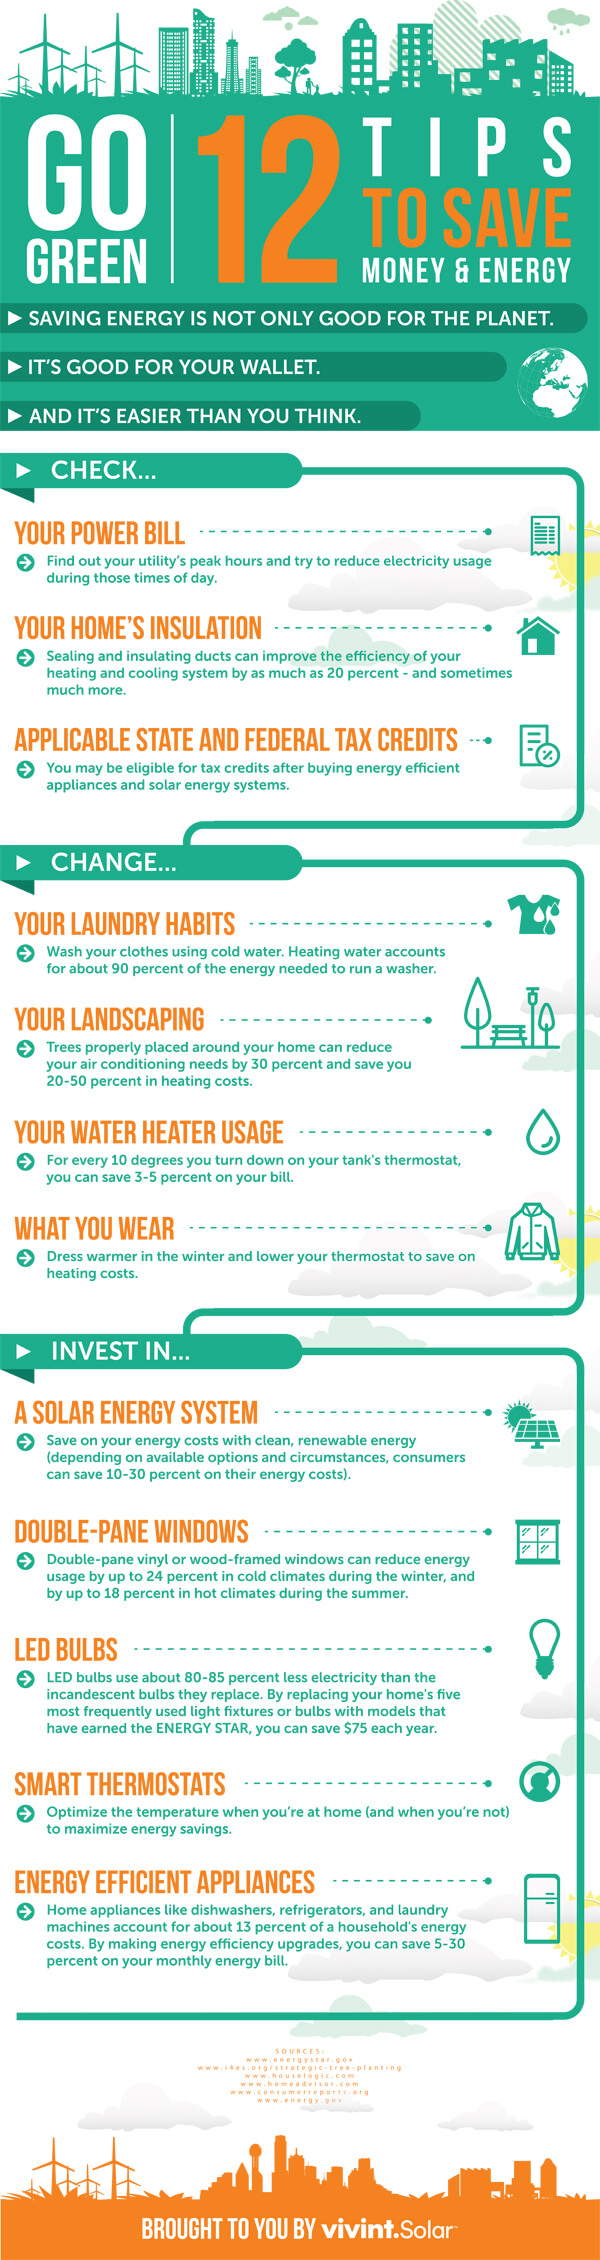 12 Ways to Save Money & Energy infographic